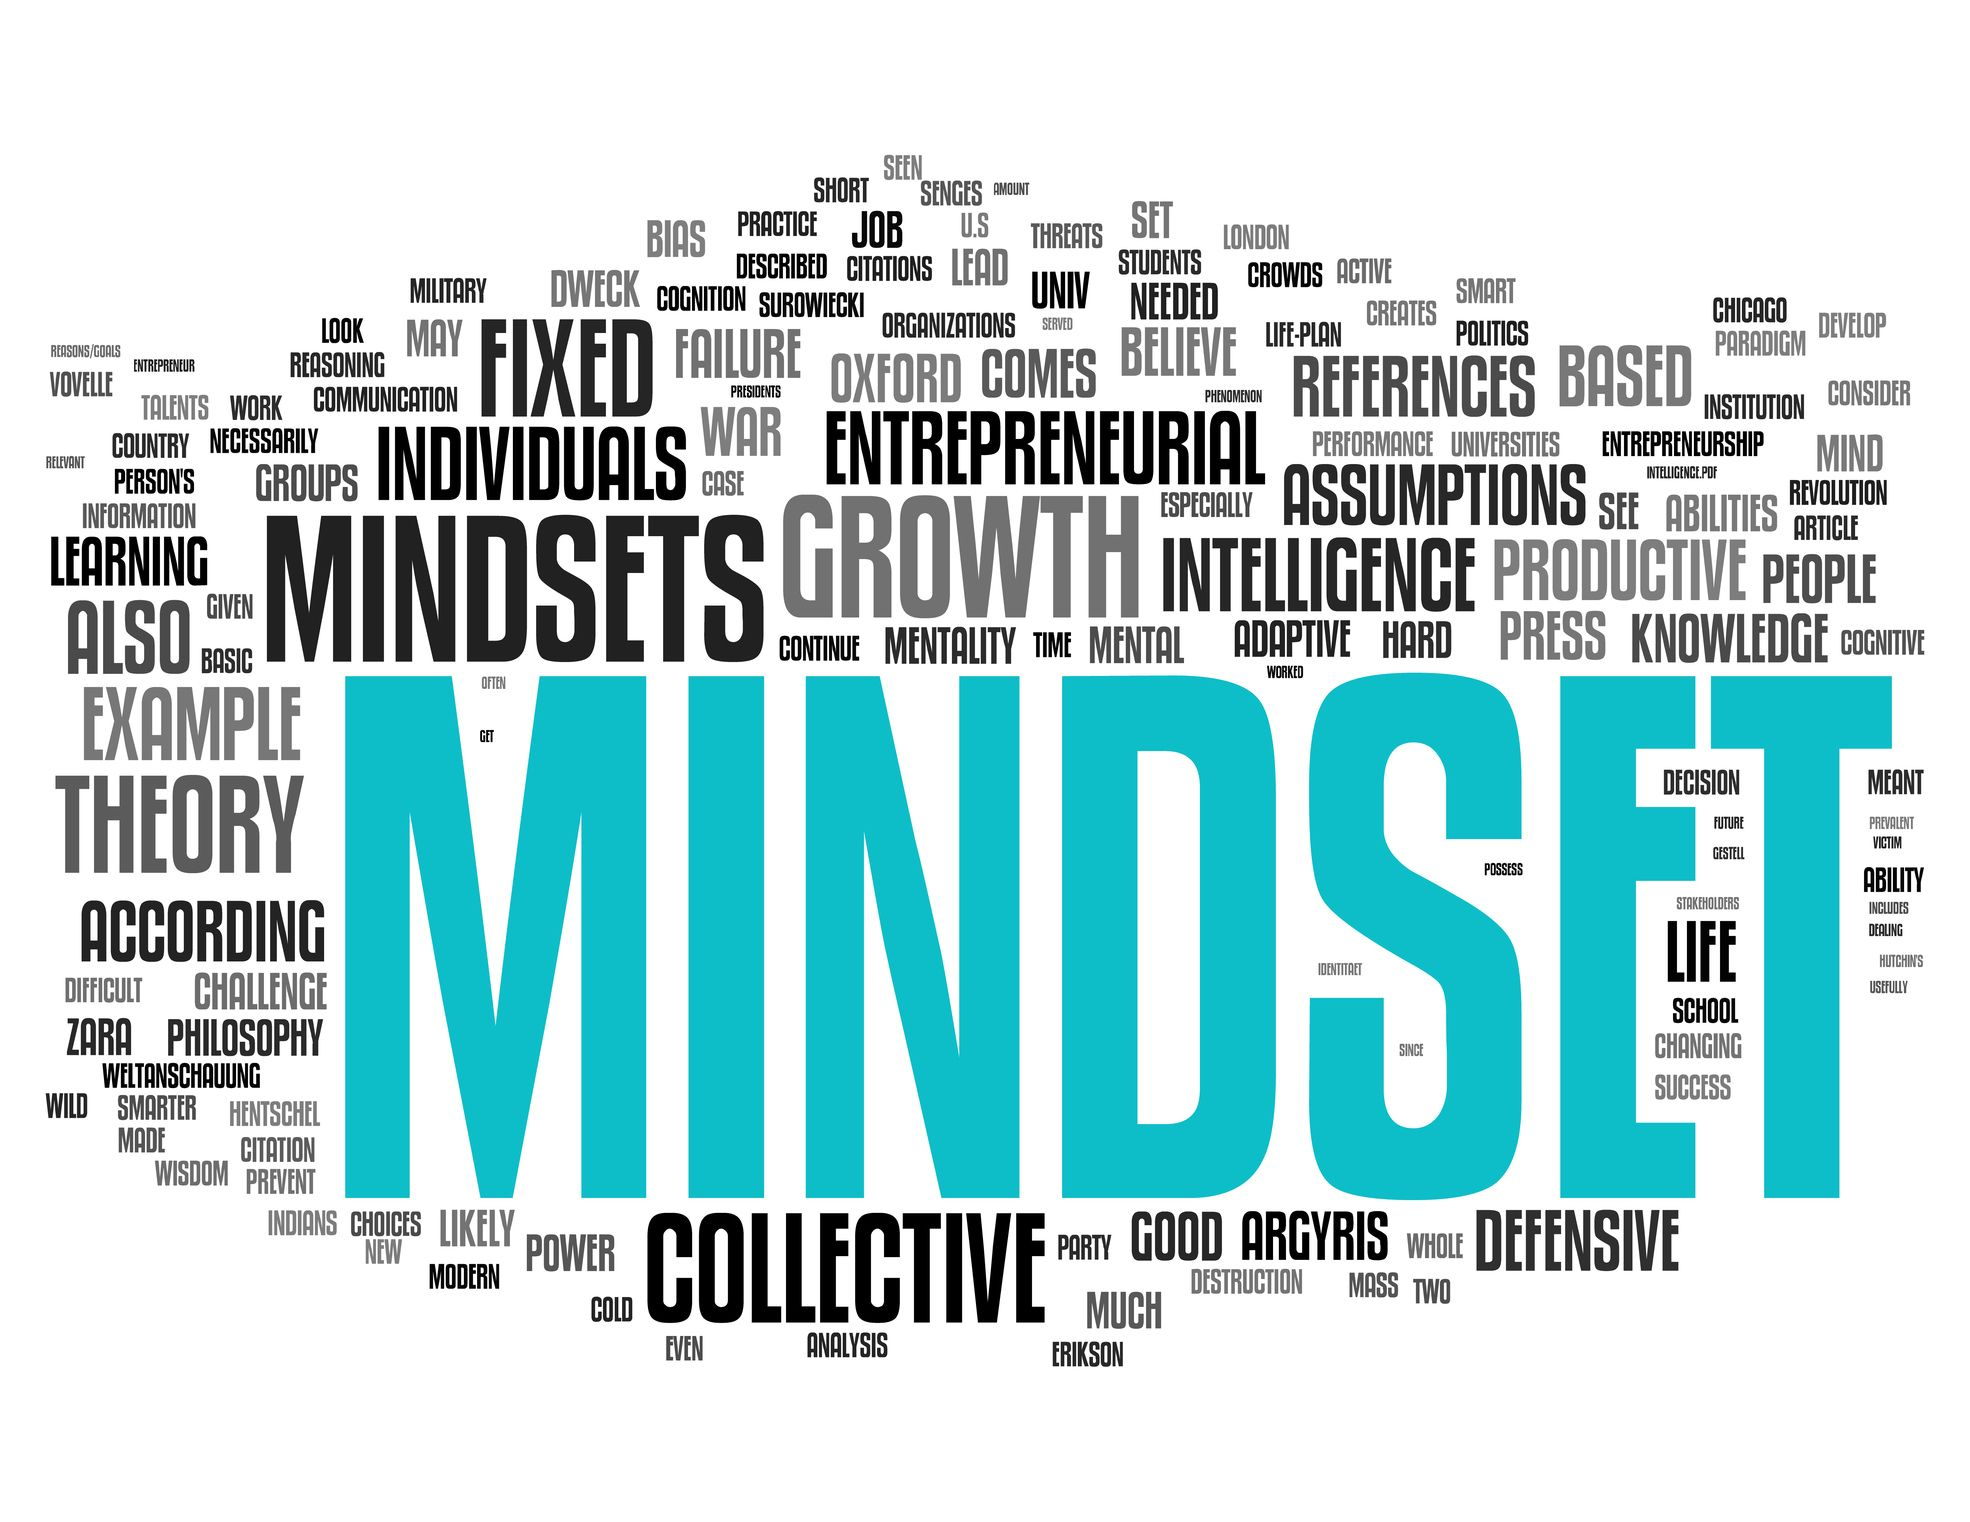 Fixed versus Growth Mindset